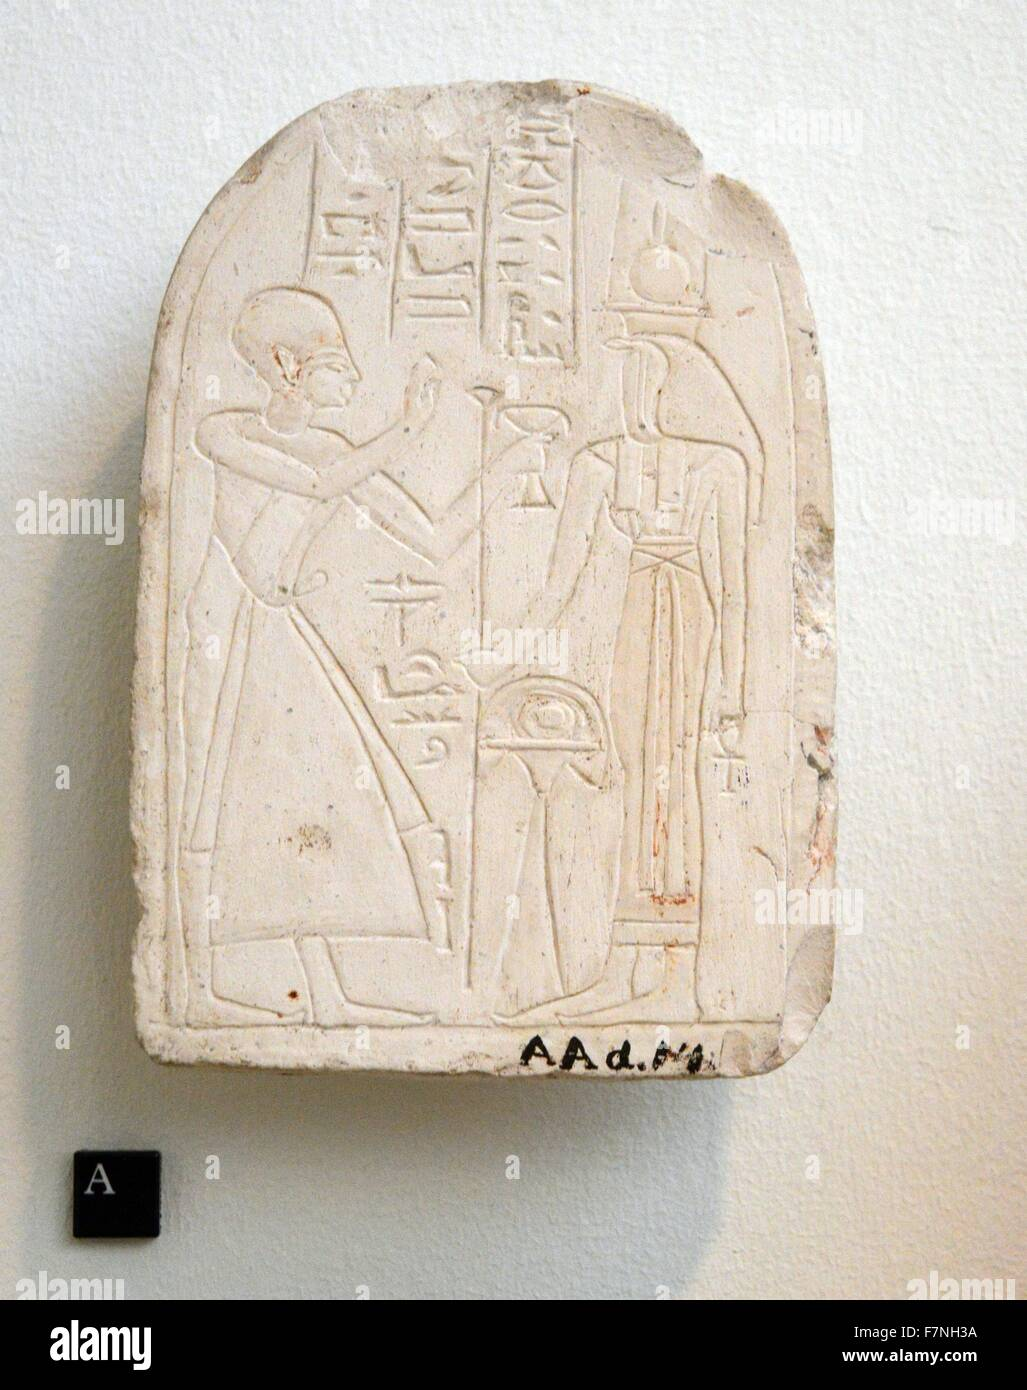 Limestone stela with depictions of Egyptian Gofs and hieroglyphs. Dated 1500 B.C. - Stock Image